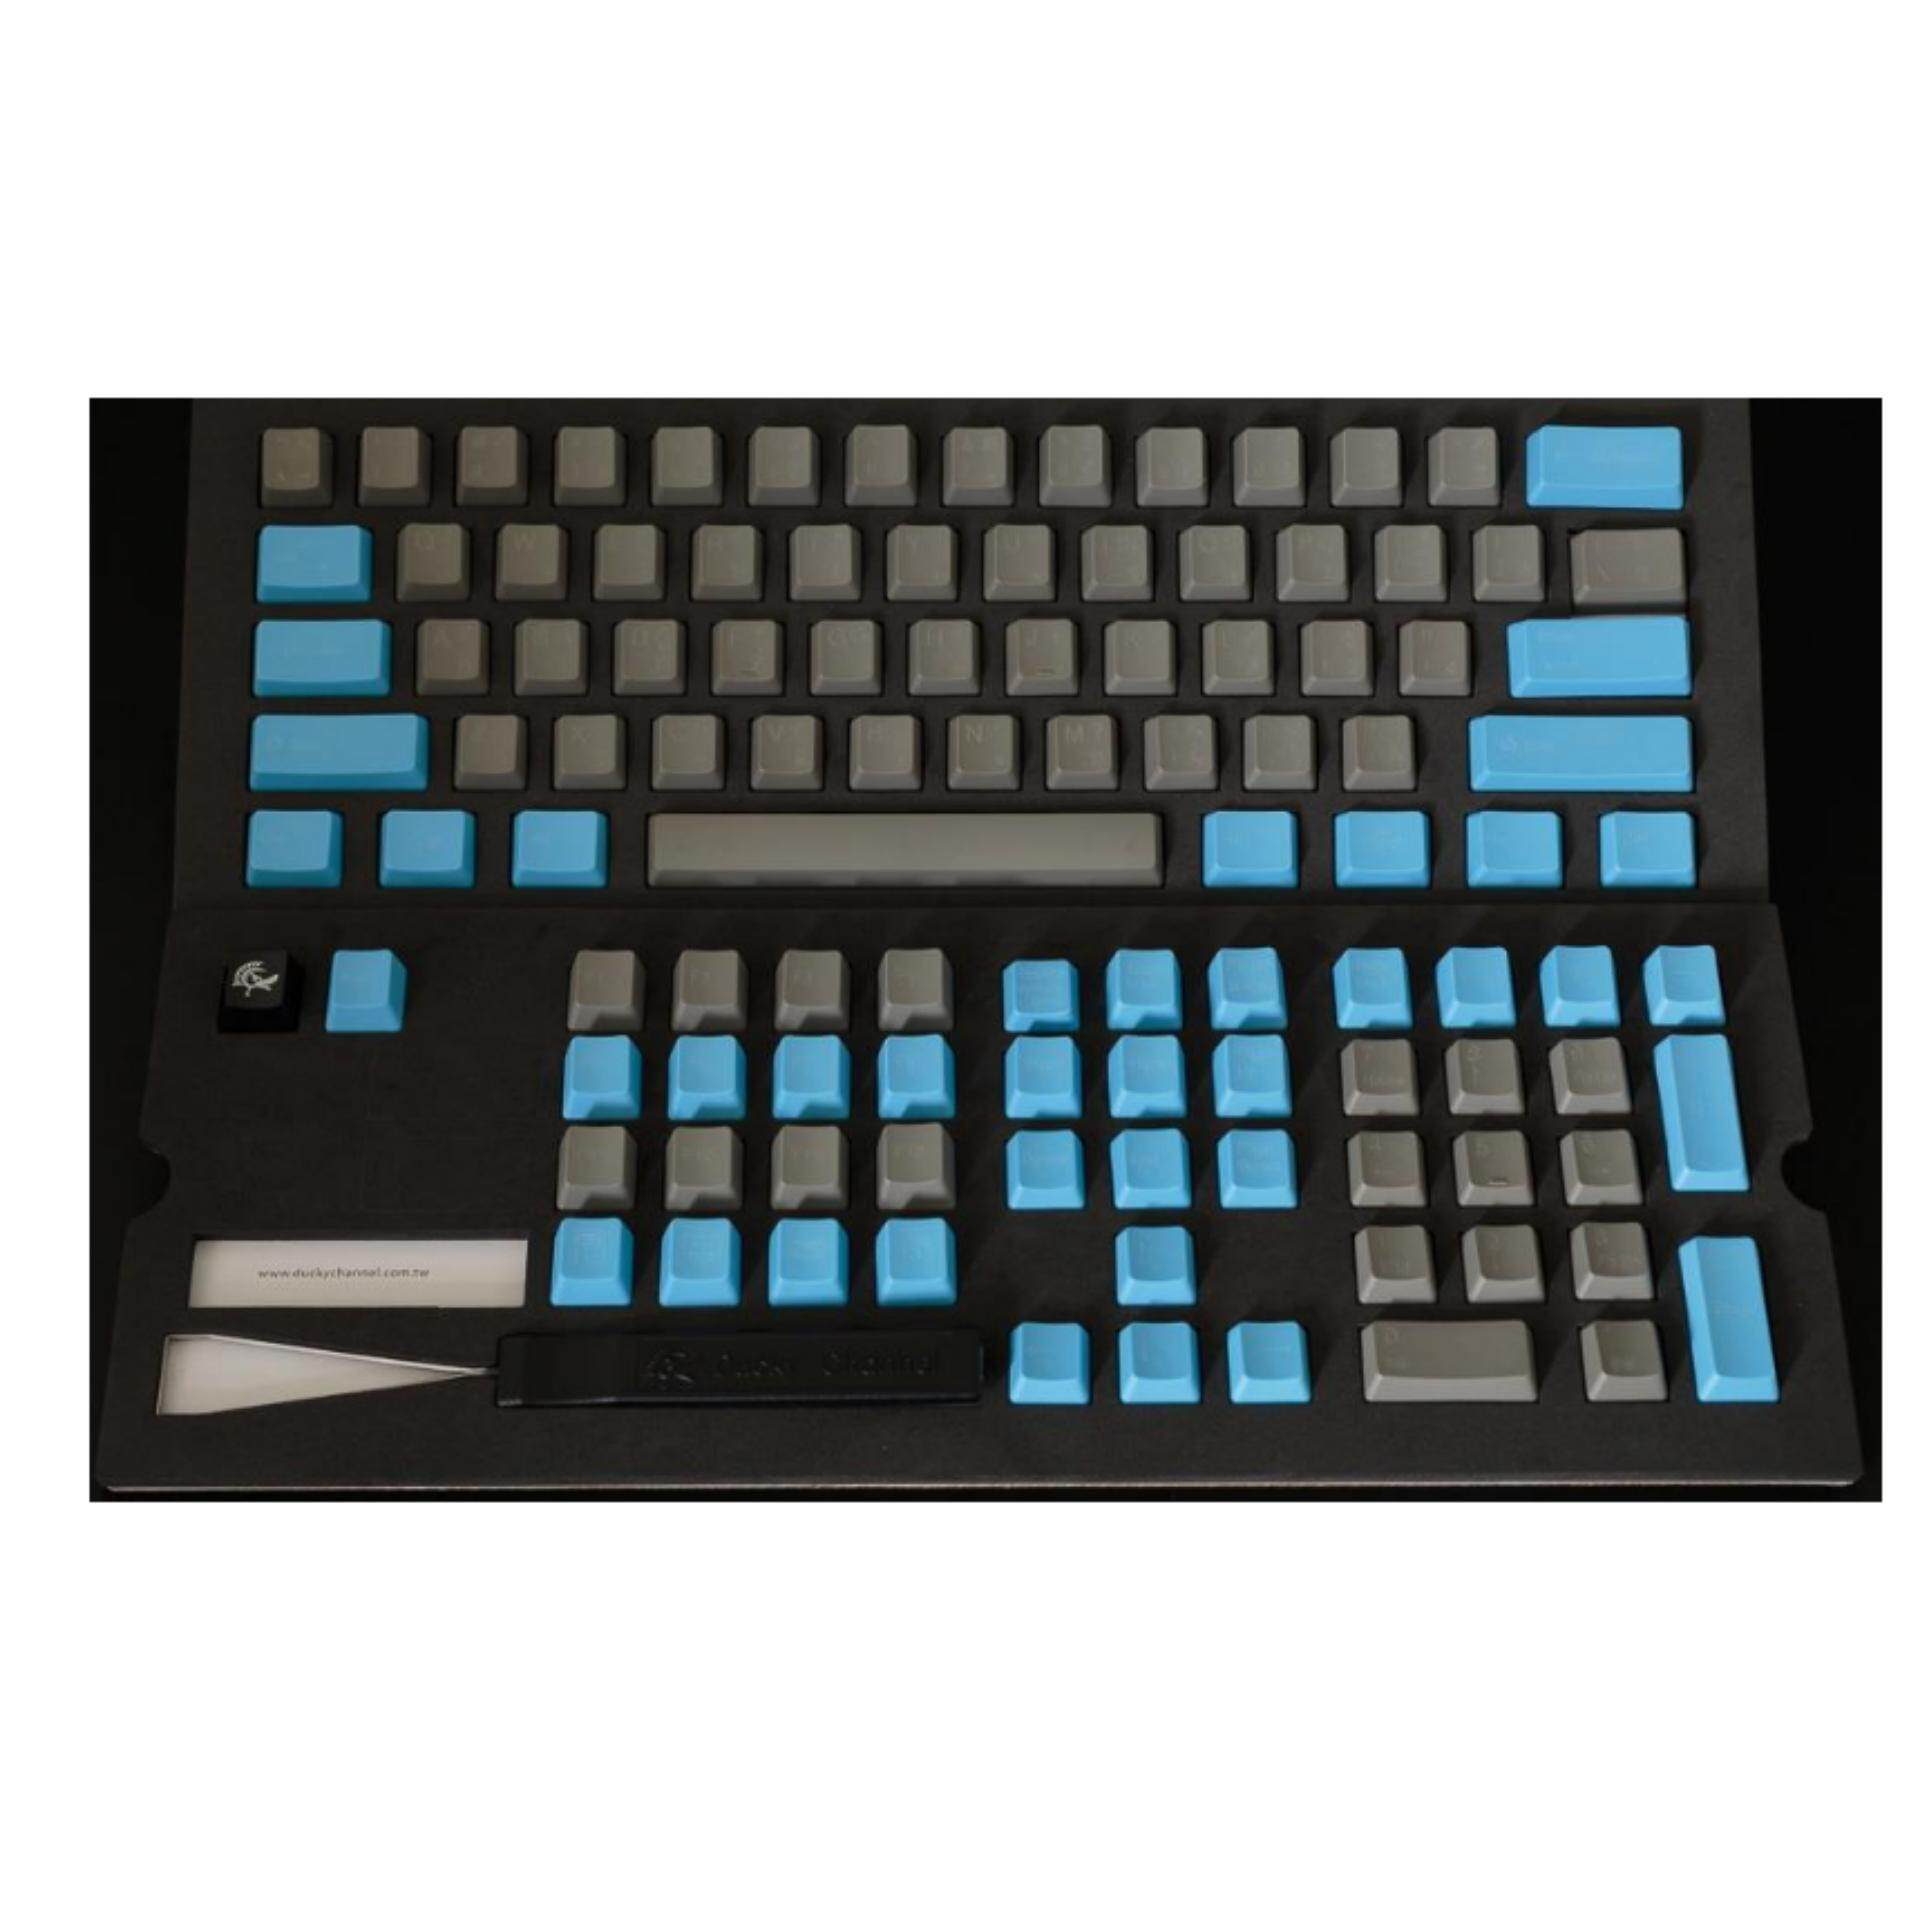 DUCKY KEY CAP S9C3-S108-THPTZ1 ( PBT/US/TH ) ปุ่มสีฟ้า